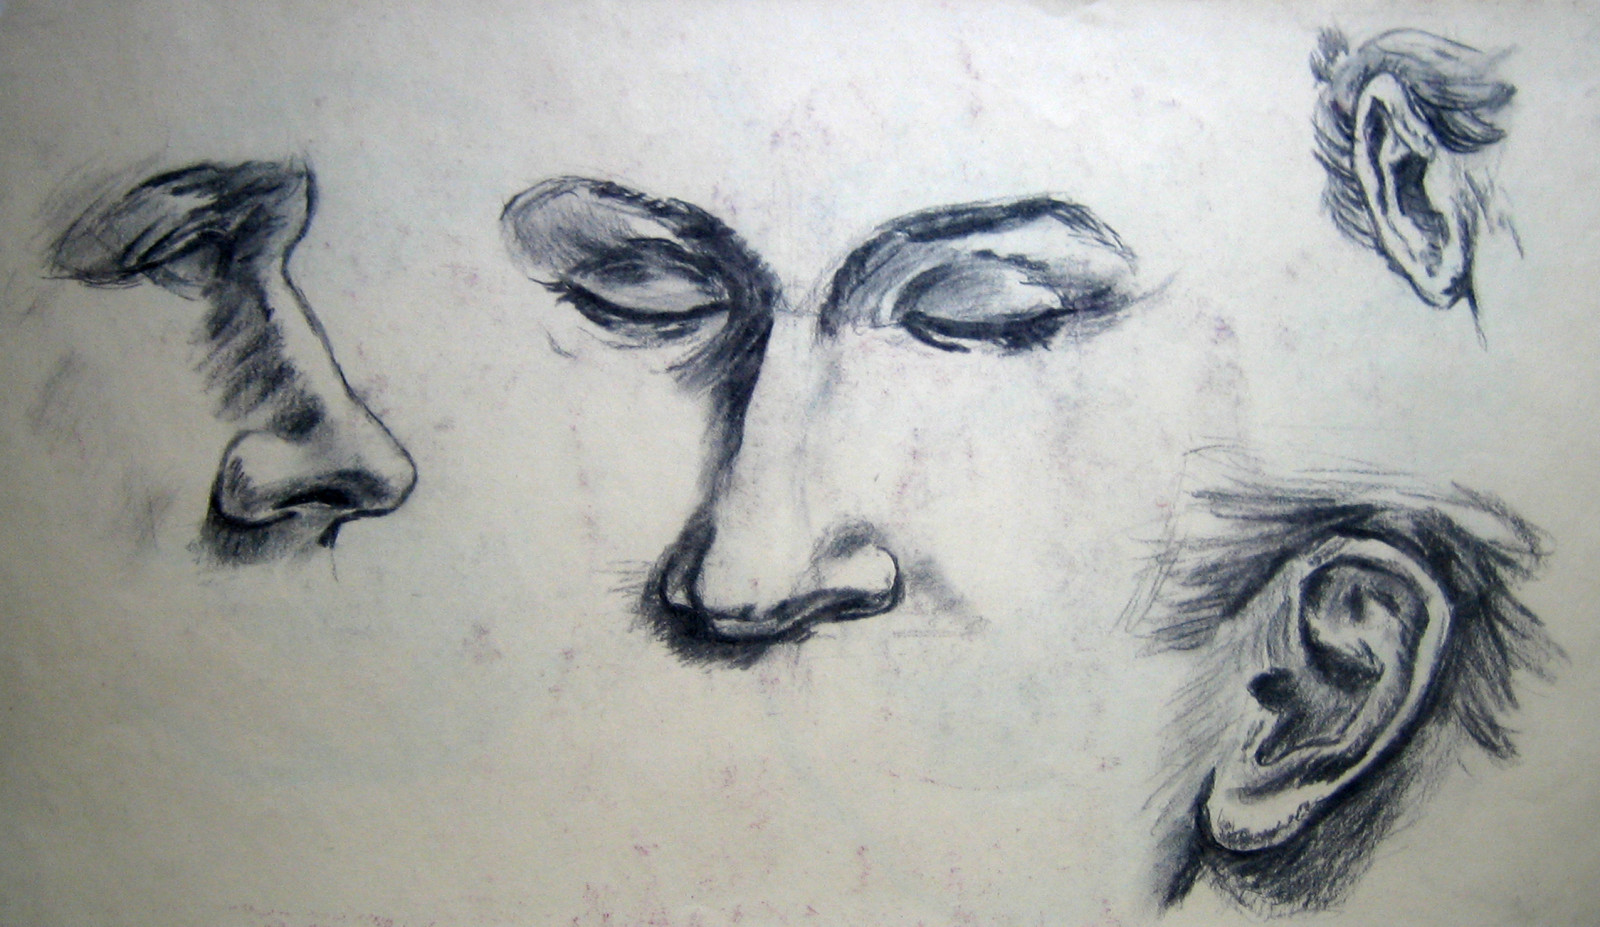 practise-noses-and-ears-drawing-with-coal